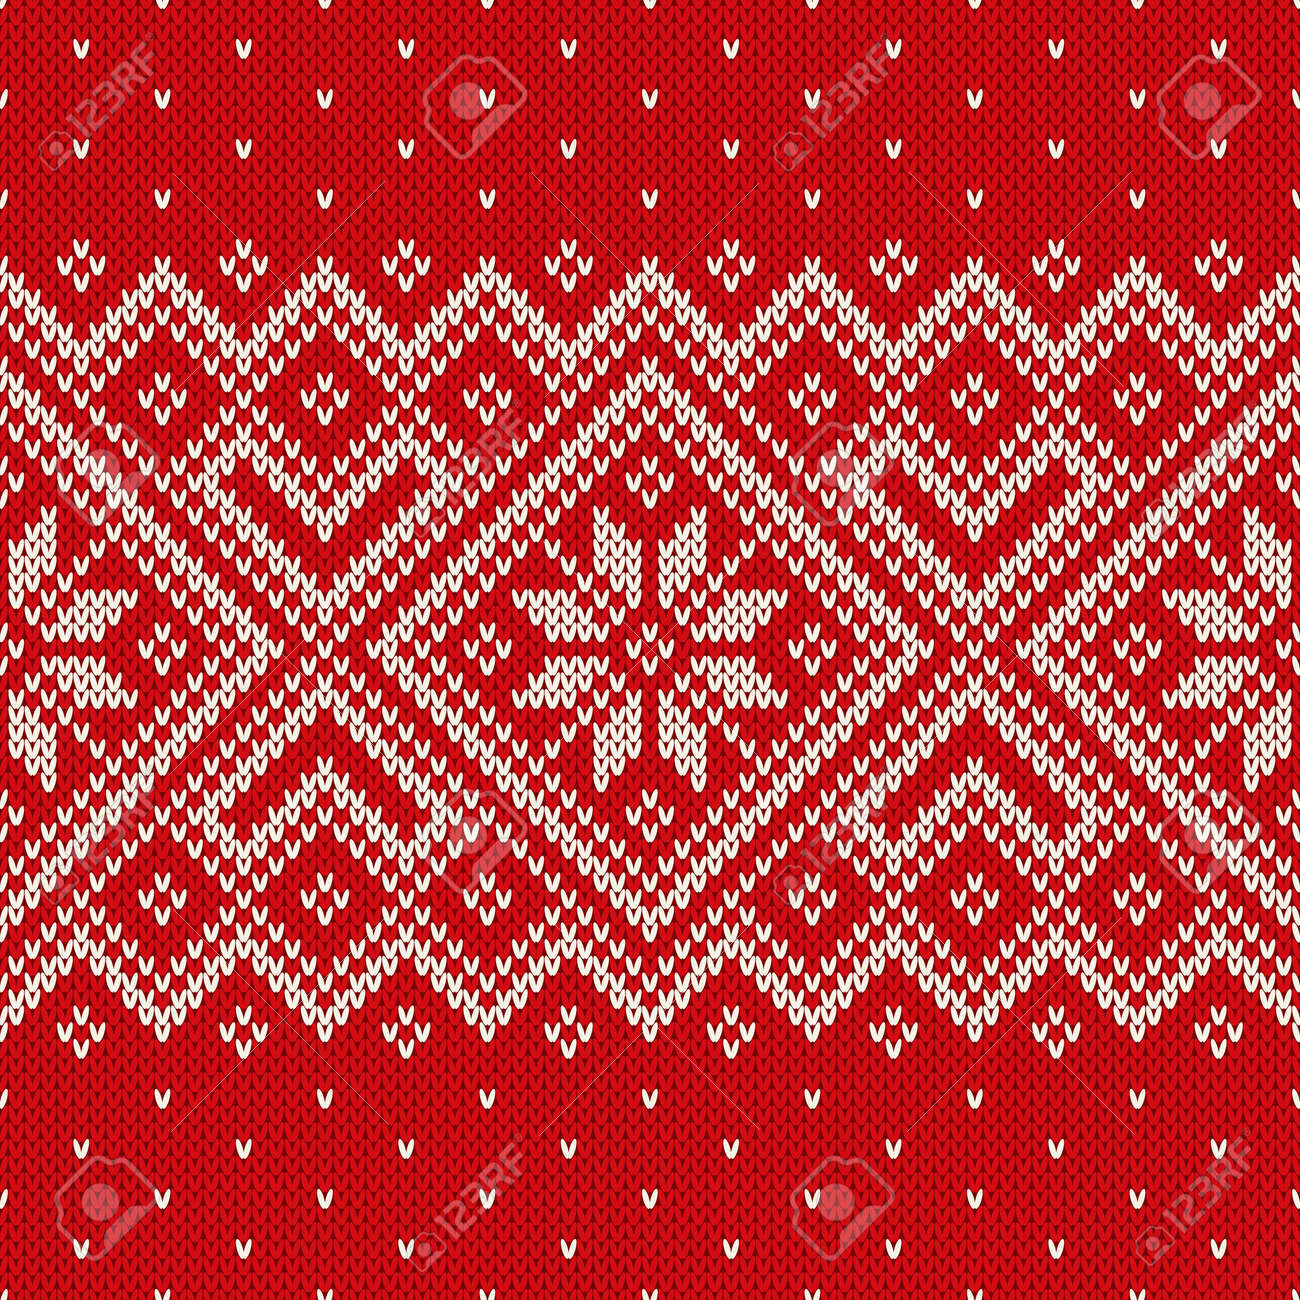 d832c0593 Christmas sweater design on the wool knitted texture. Seamless pattern  Stock Vector - 34010035